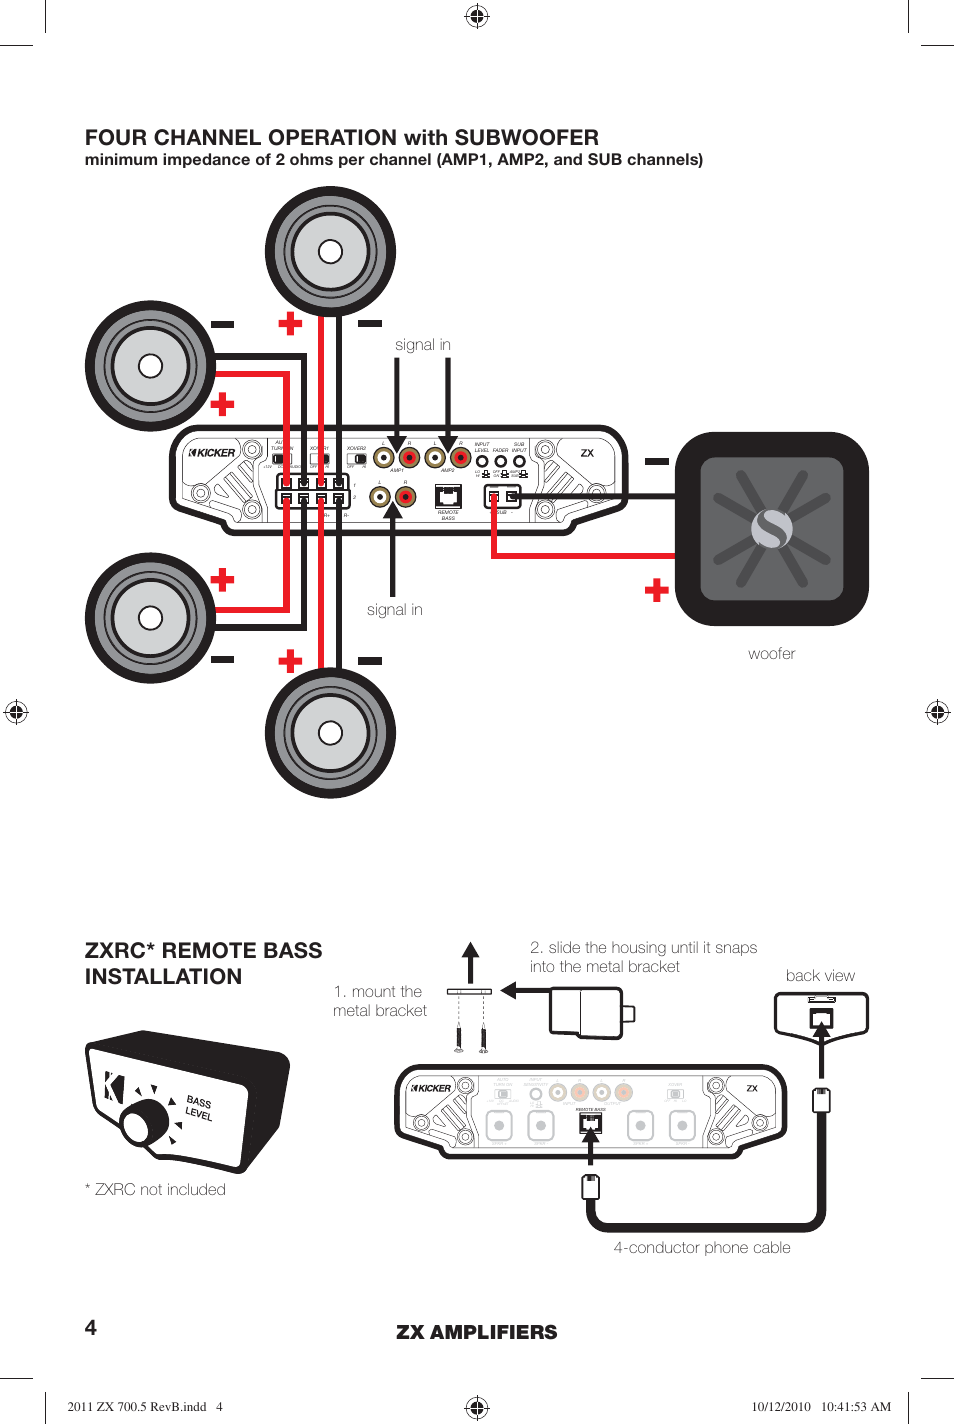 DIAGRAM] Kicker Cvr 12 4 Ohm Wiring Diagram FULL Version HD Quality Wiring  Diagram - DIAGRAMGIANT.CDU-BRACKWEDE.DEDiagram Database - cdu-brackwede.de